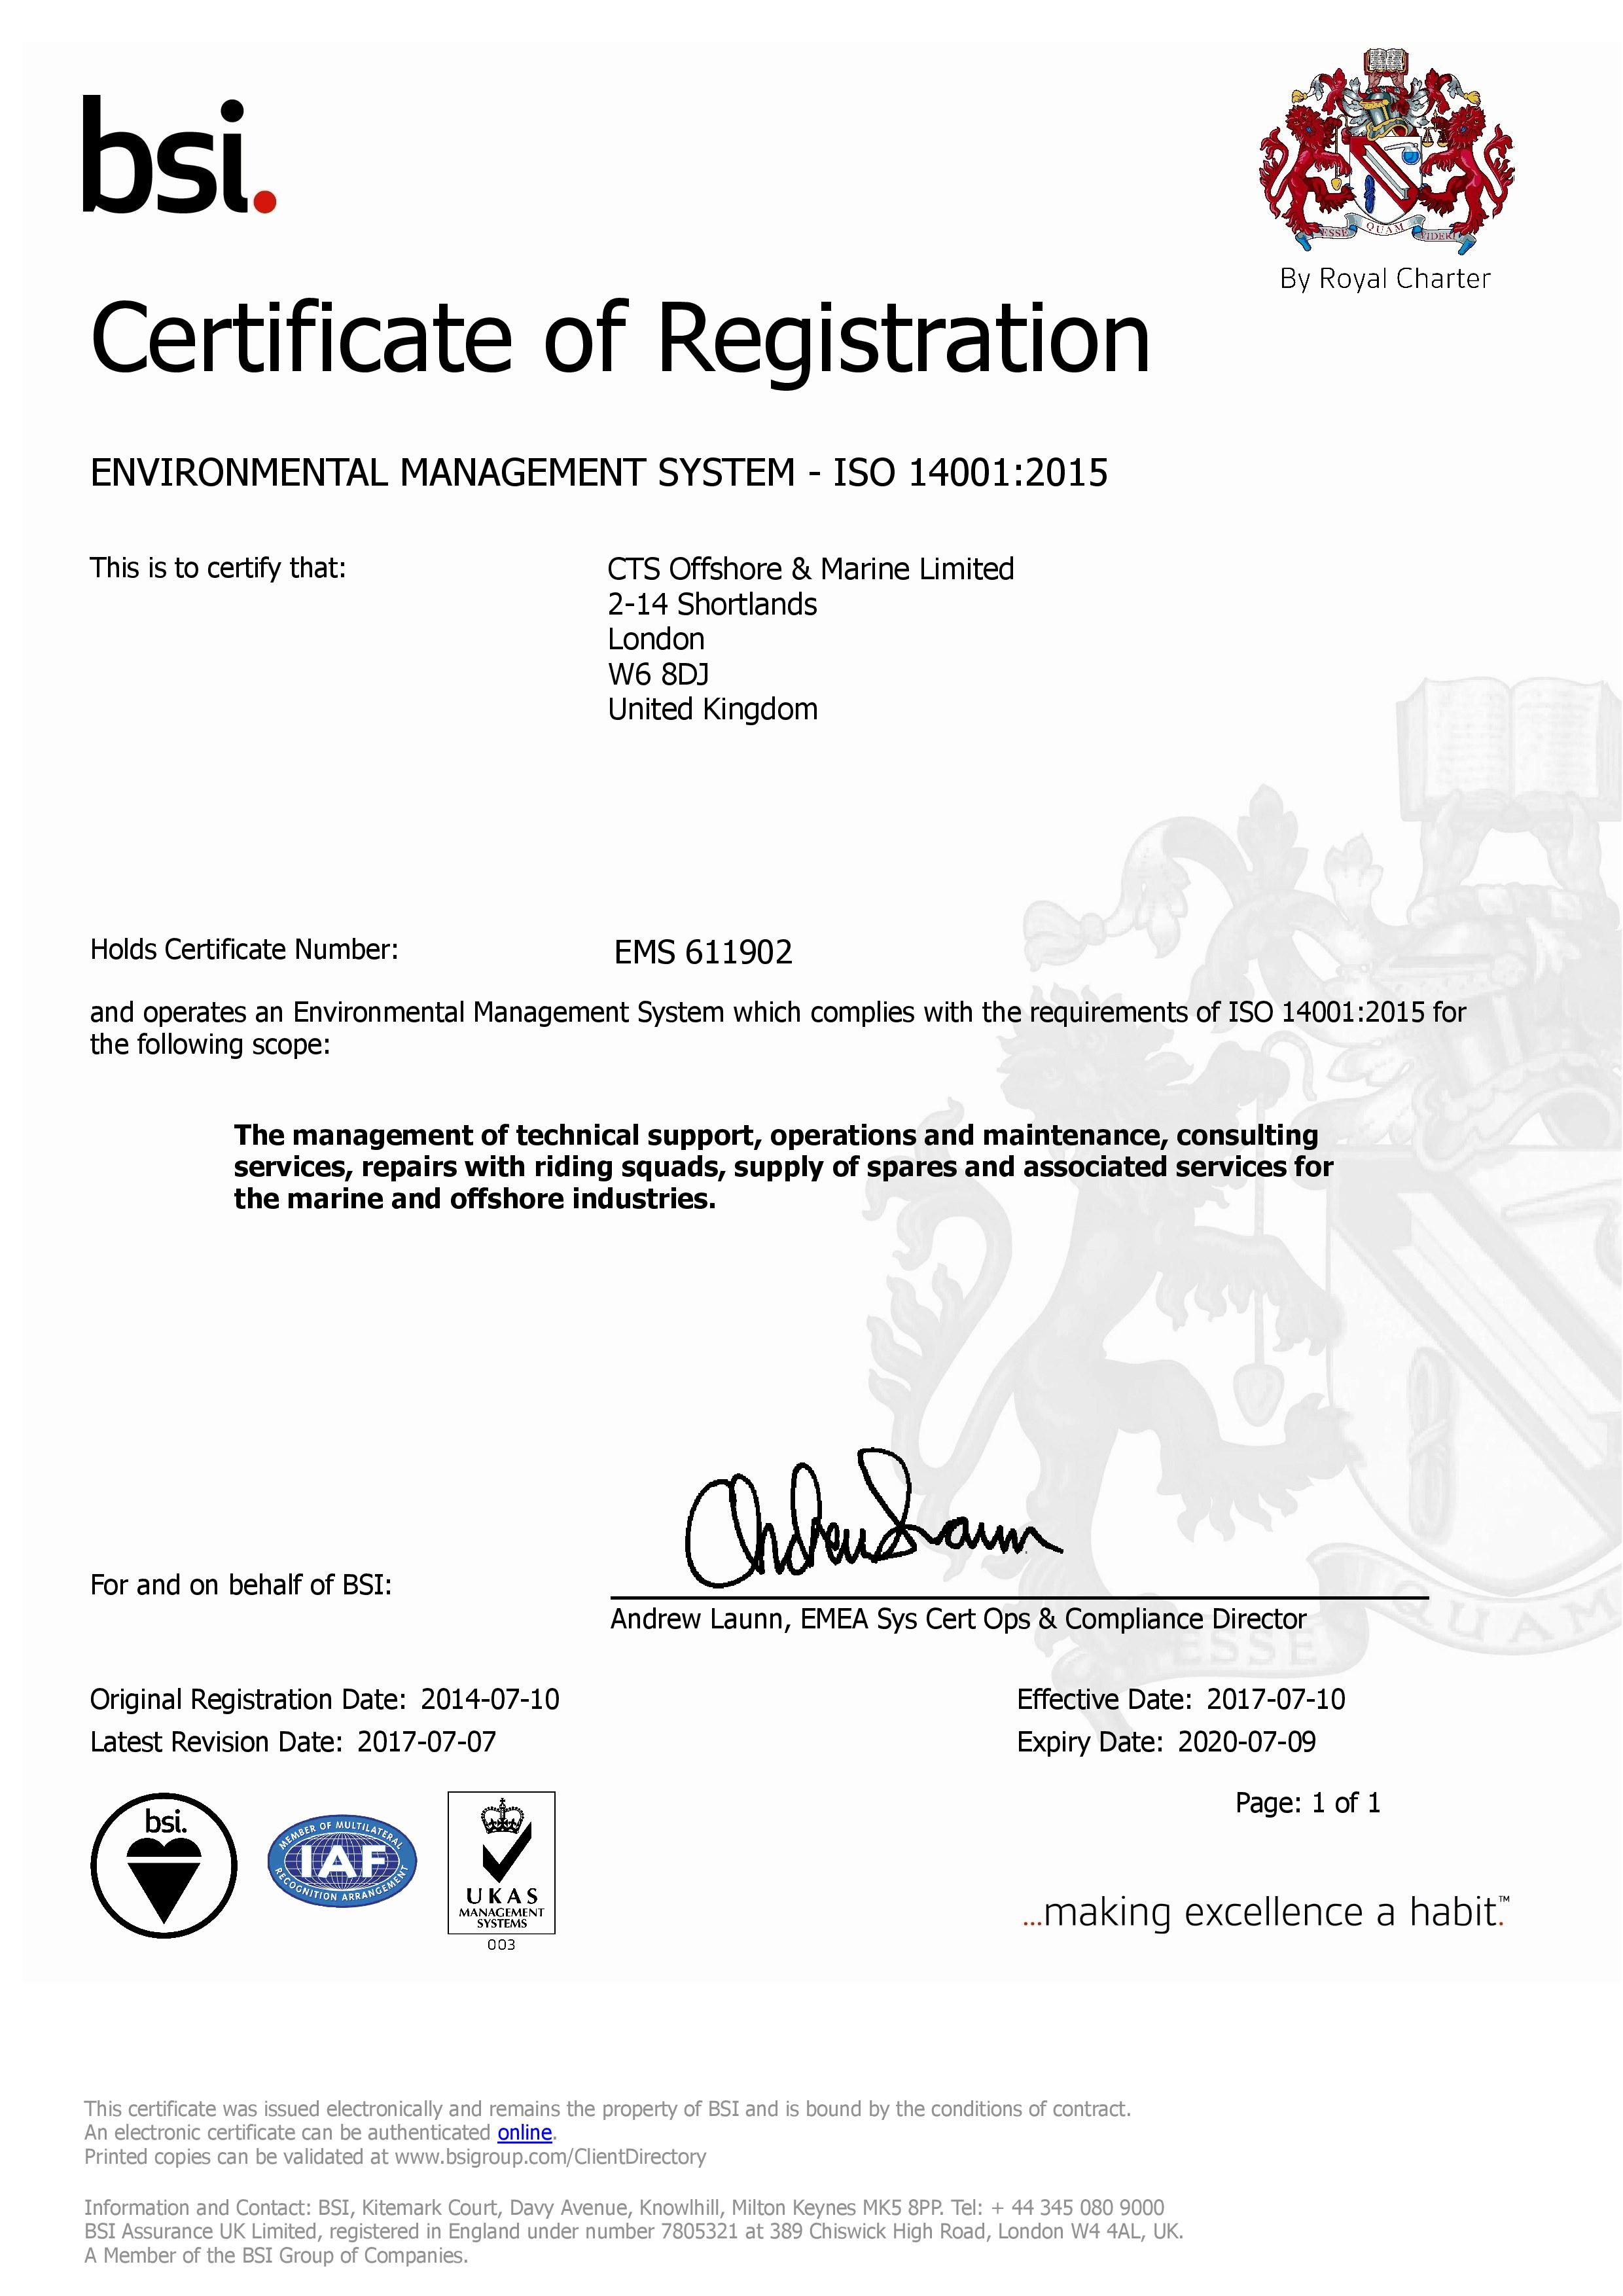 ISO 14001 Certificate | CTS Offshore and Marine Limited